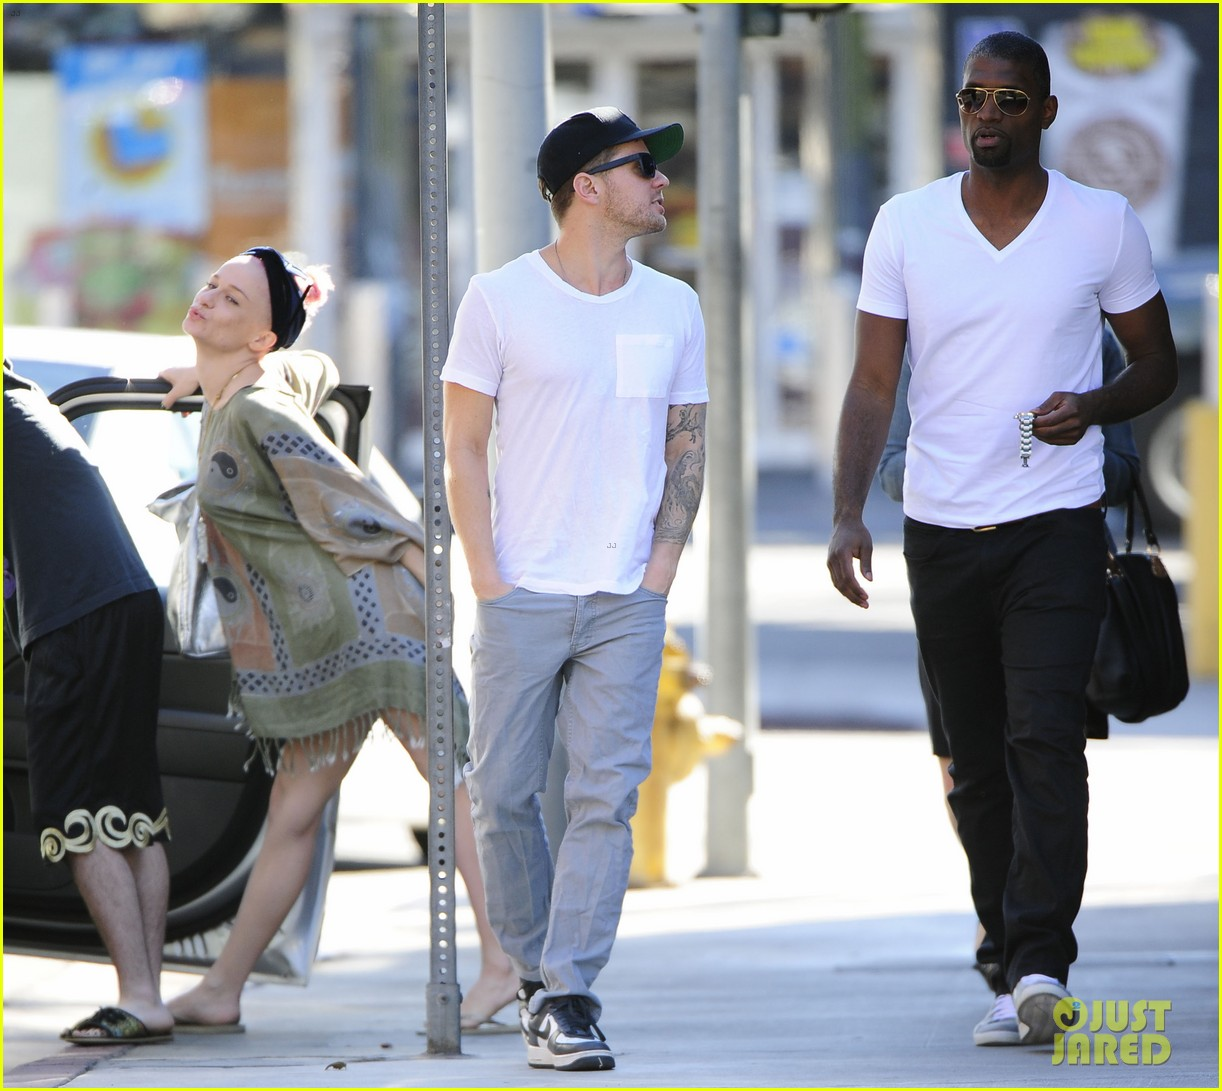 ryan phillippe hilariously photobombed by random woman on sidewalk 02